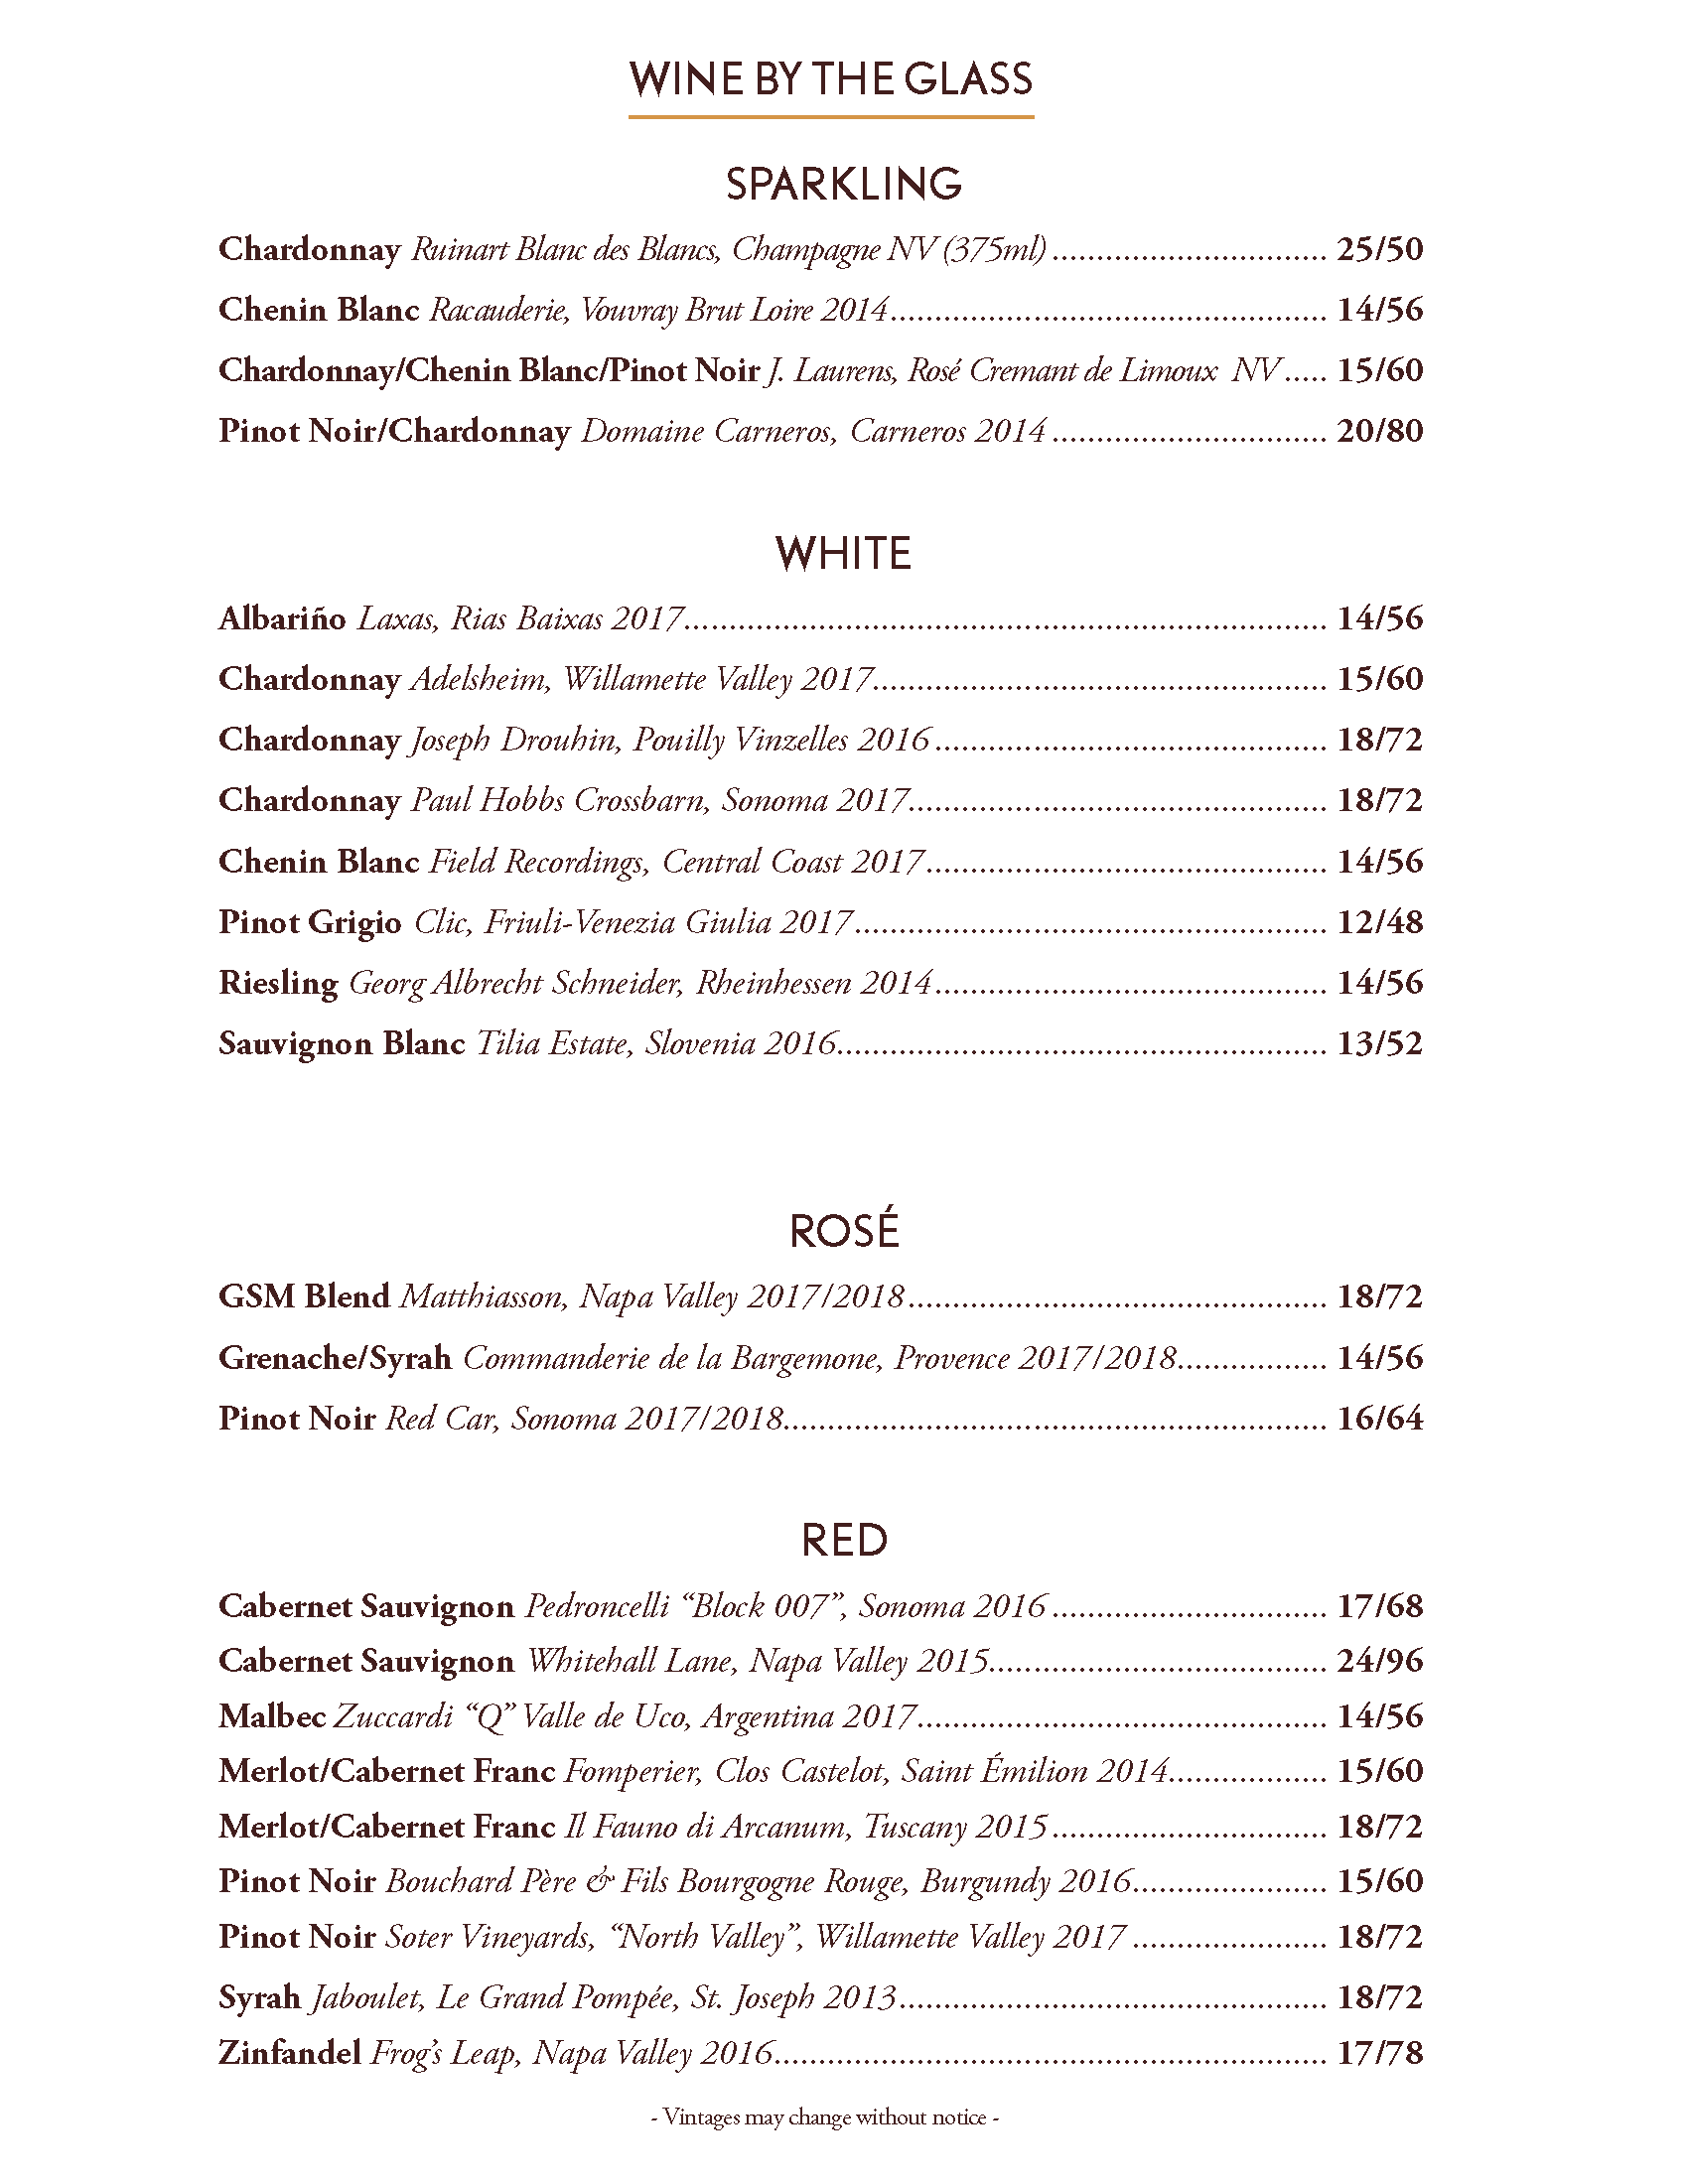 PSSteak_WineBeerSpiritList-4.1.19_Page_02.png